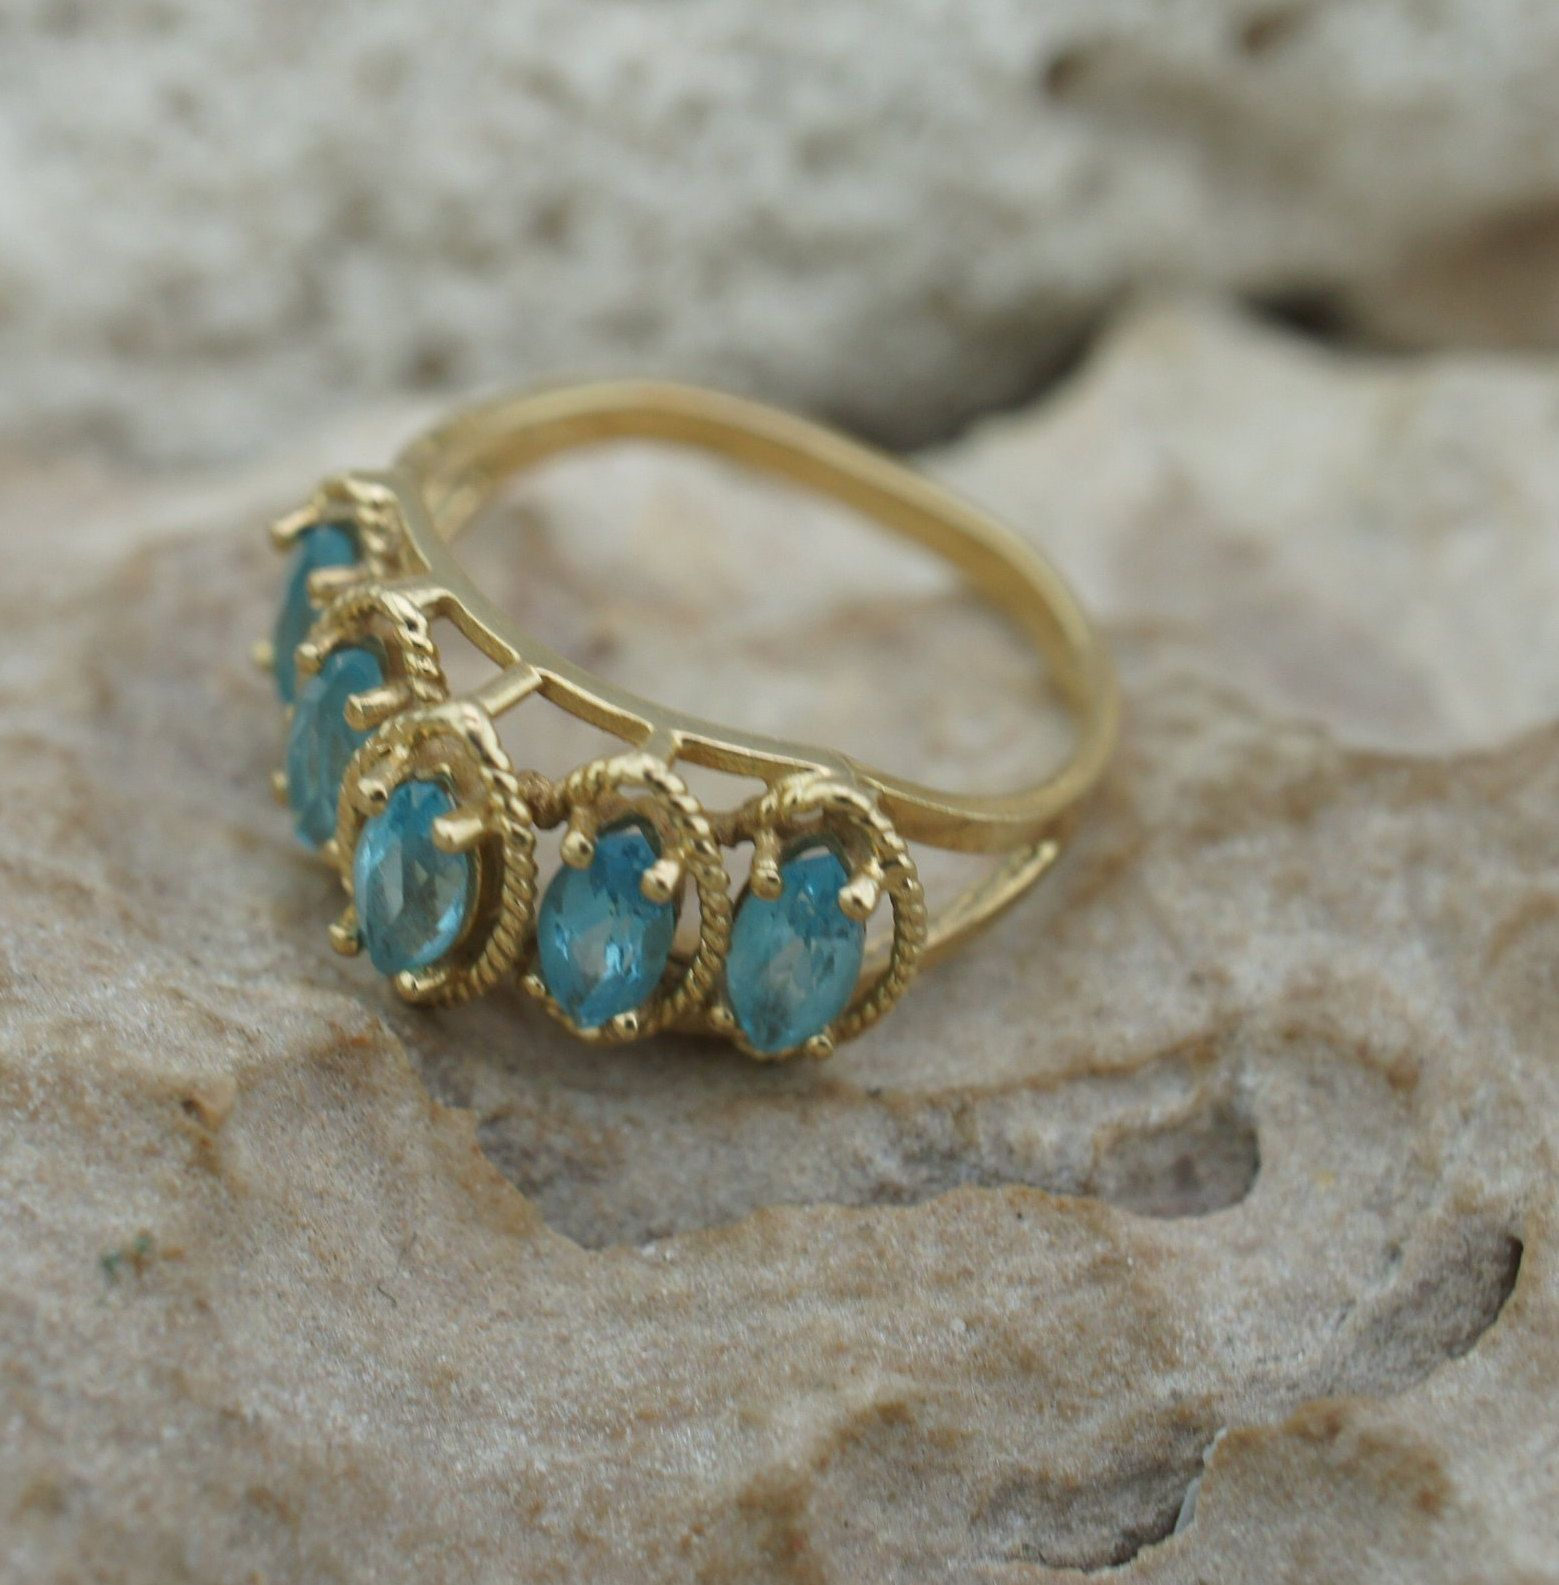 Vintage Solid Gold 10k Solid Gold Afjc Ring Yellow Light Blue Etsy Blue Stones Jewelry Solid Gold Blue Stone